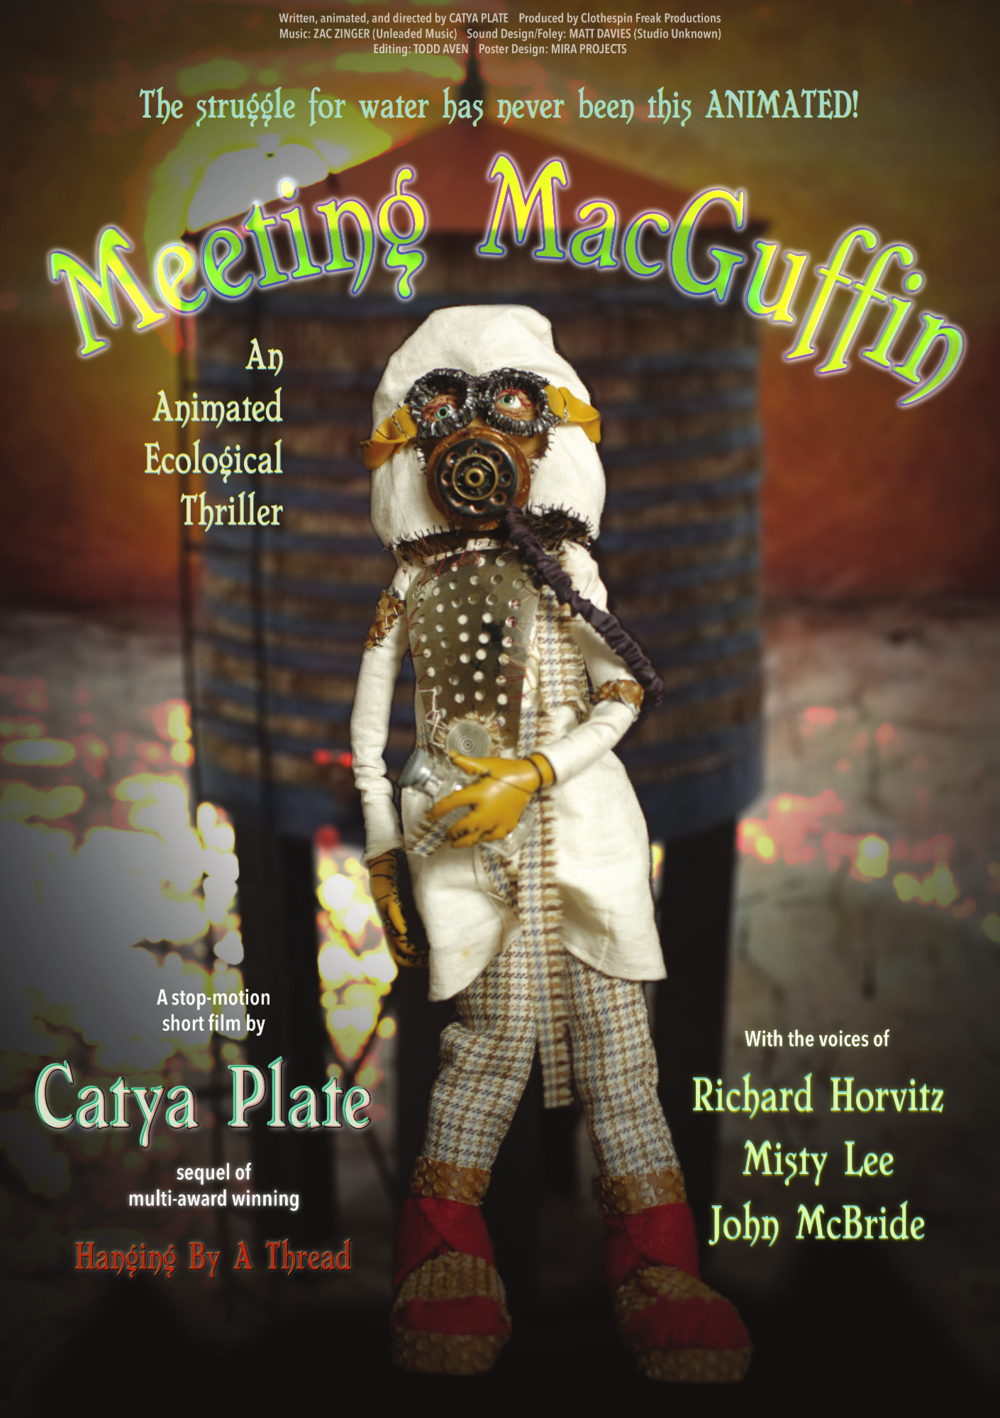 Meeting MacGuffin poster 4.png